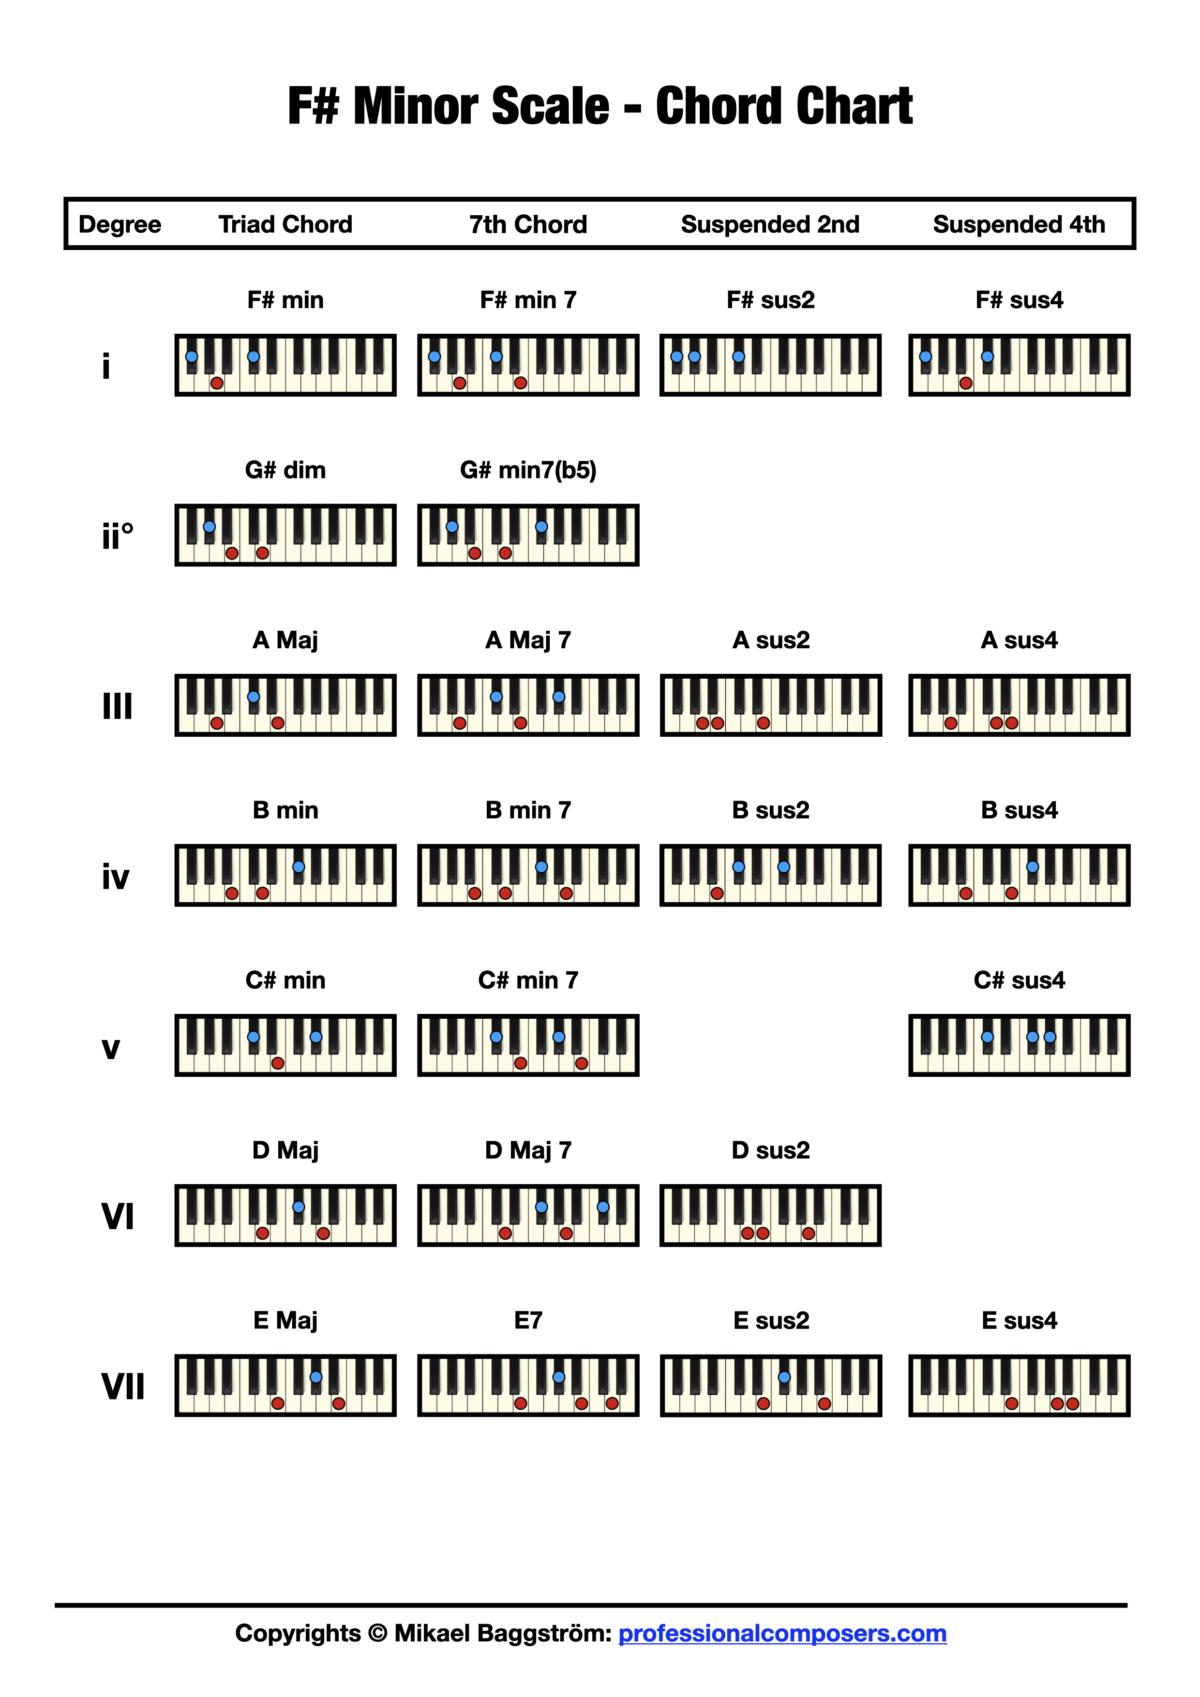 Chord Chart of F# Minor Scale